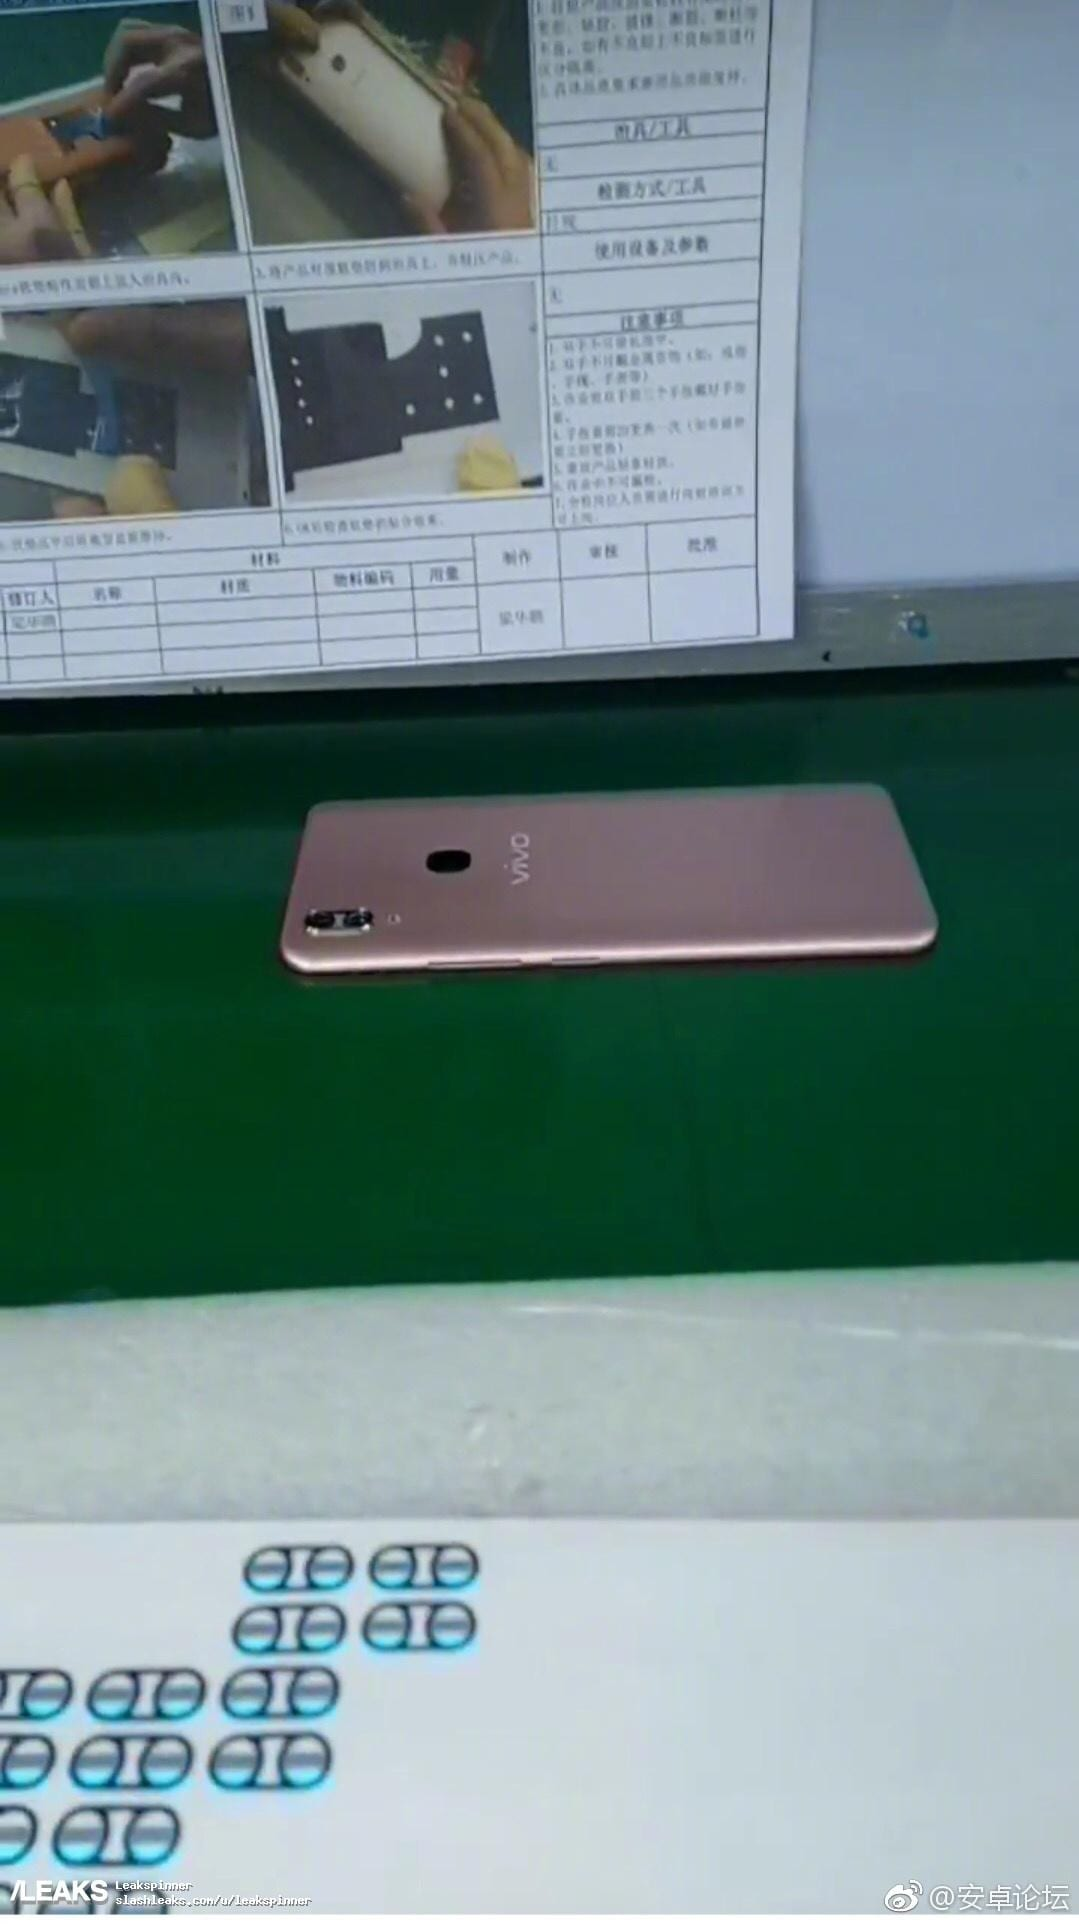 Vivo V9 leaked in live images with a notch design – RS-NEWS